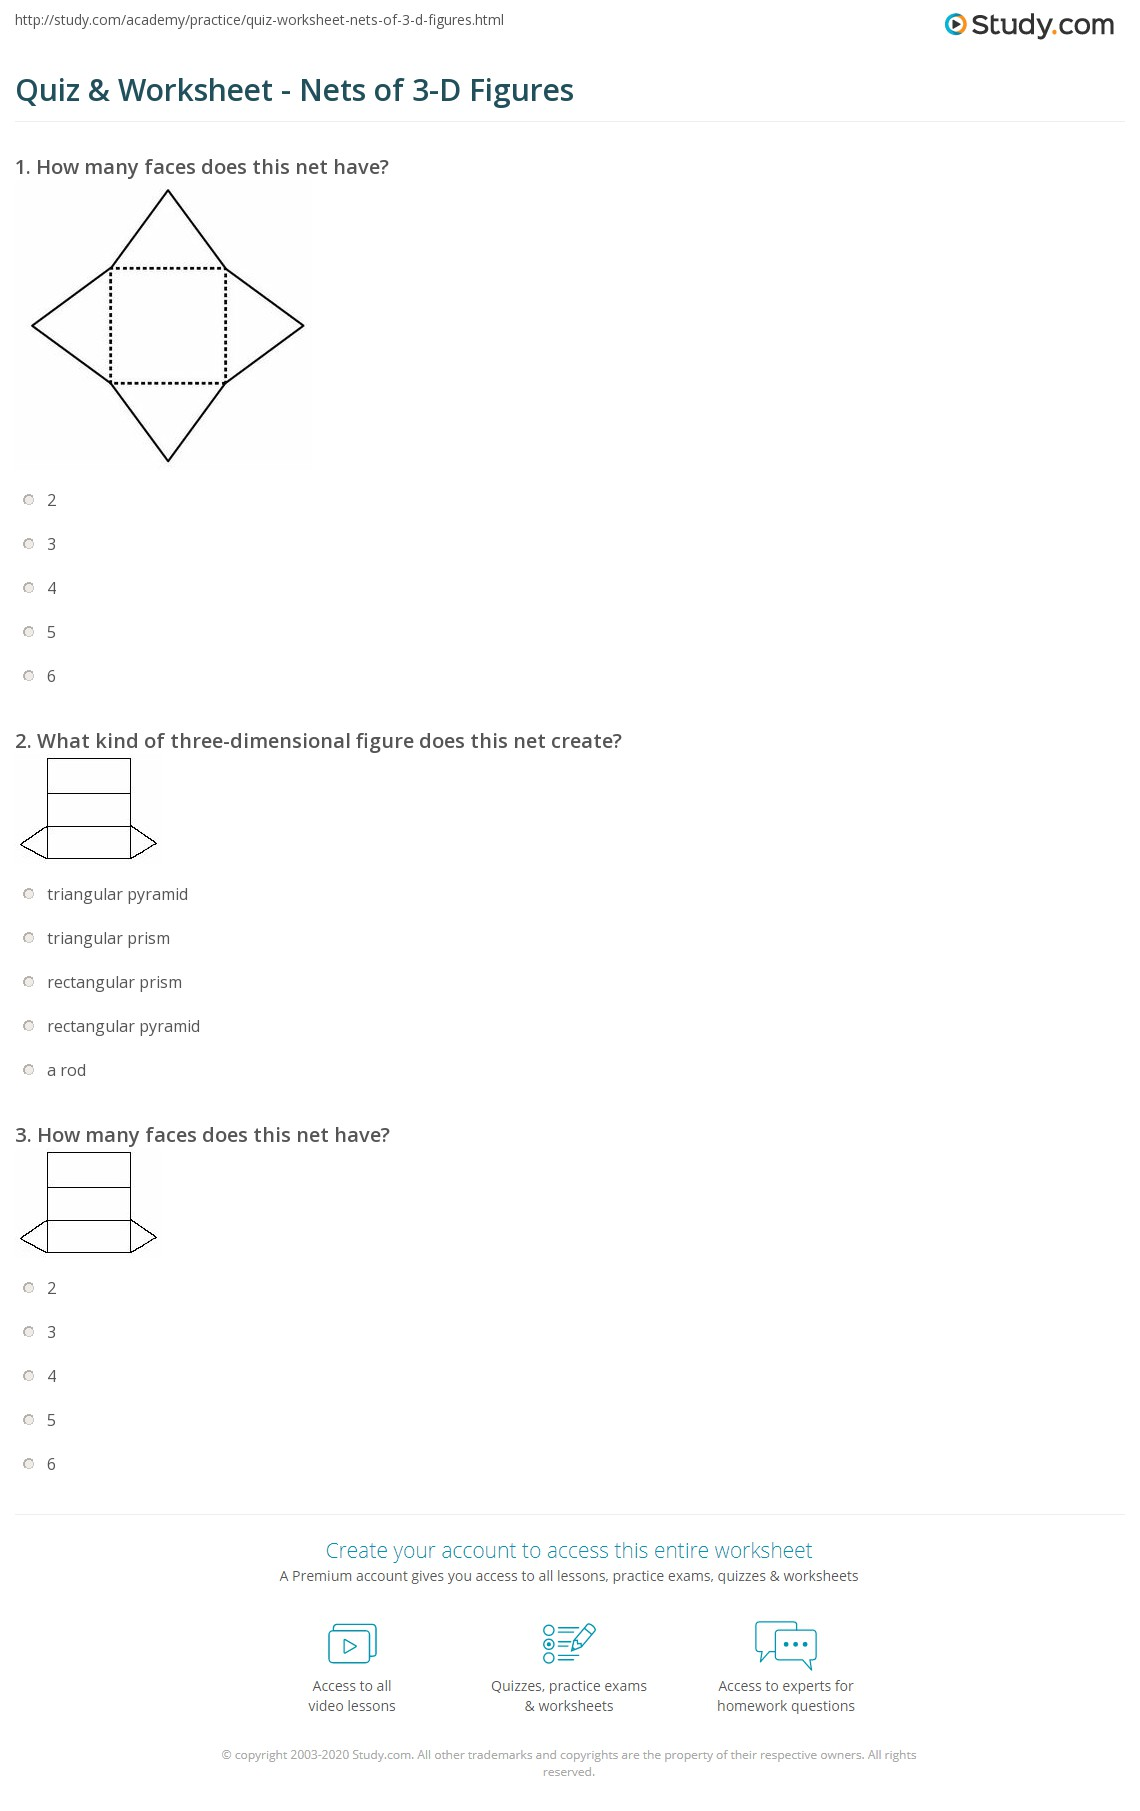 Quiz Worksheet Nets Of 3 D Figures Study